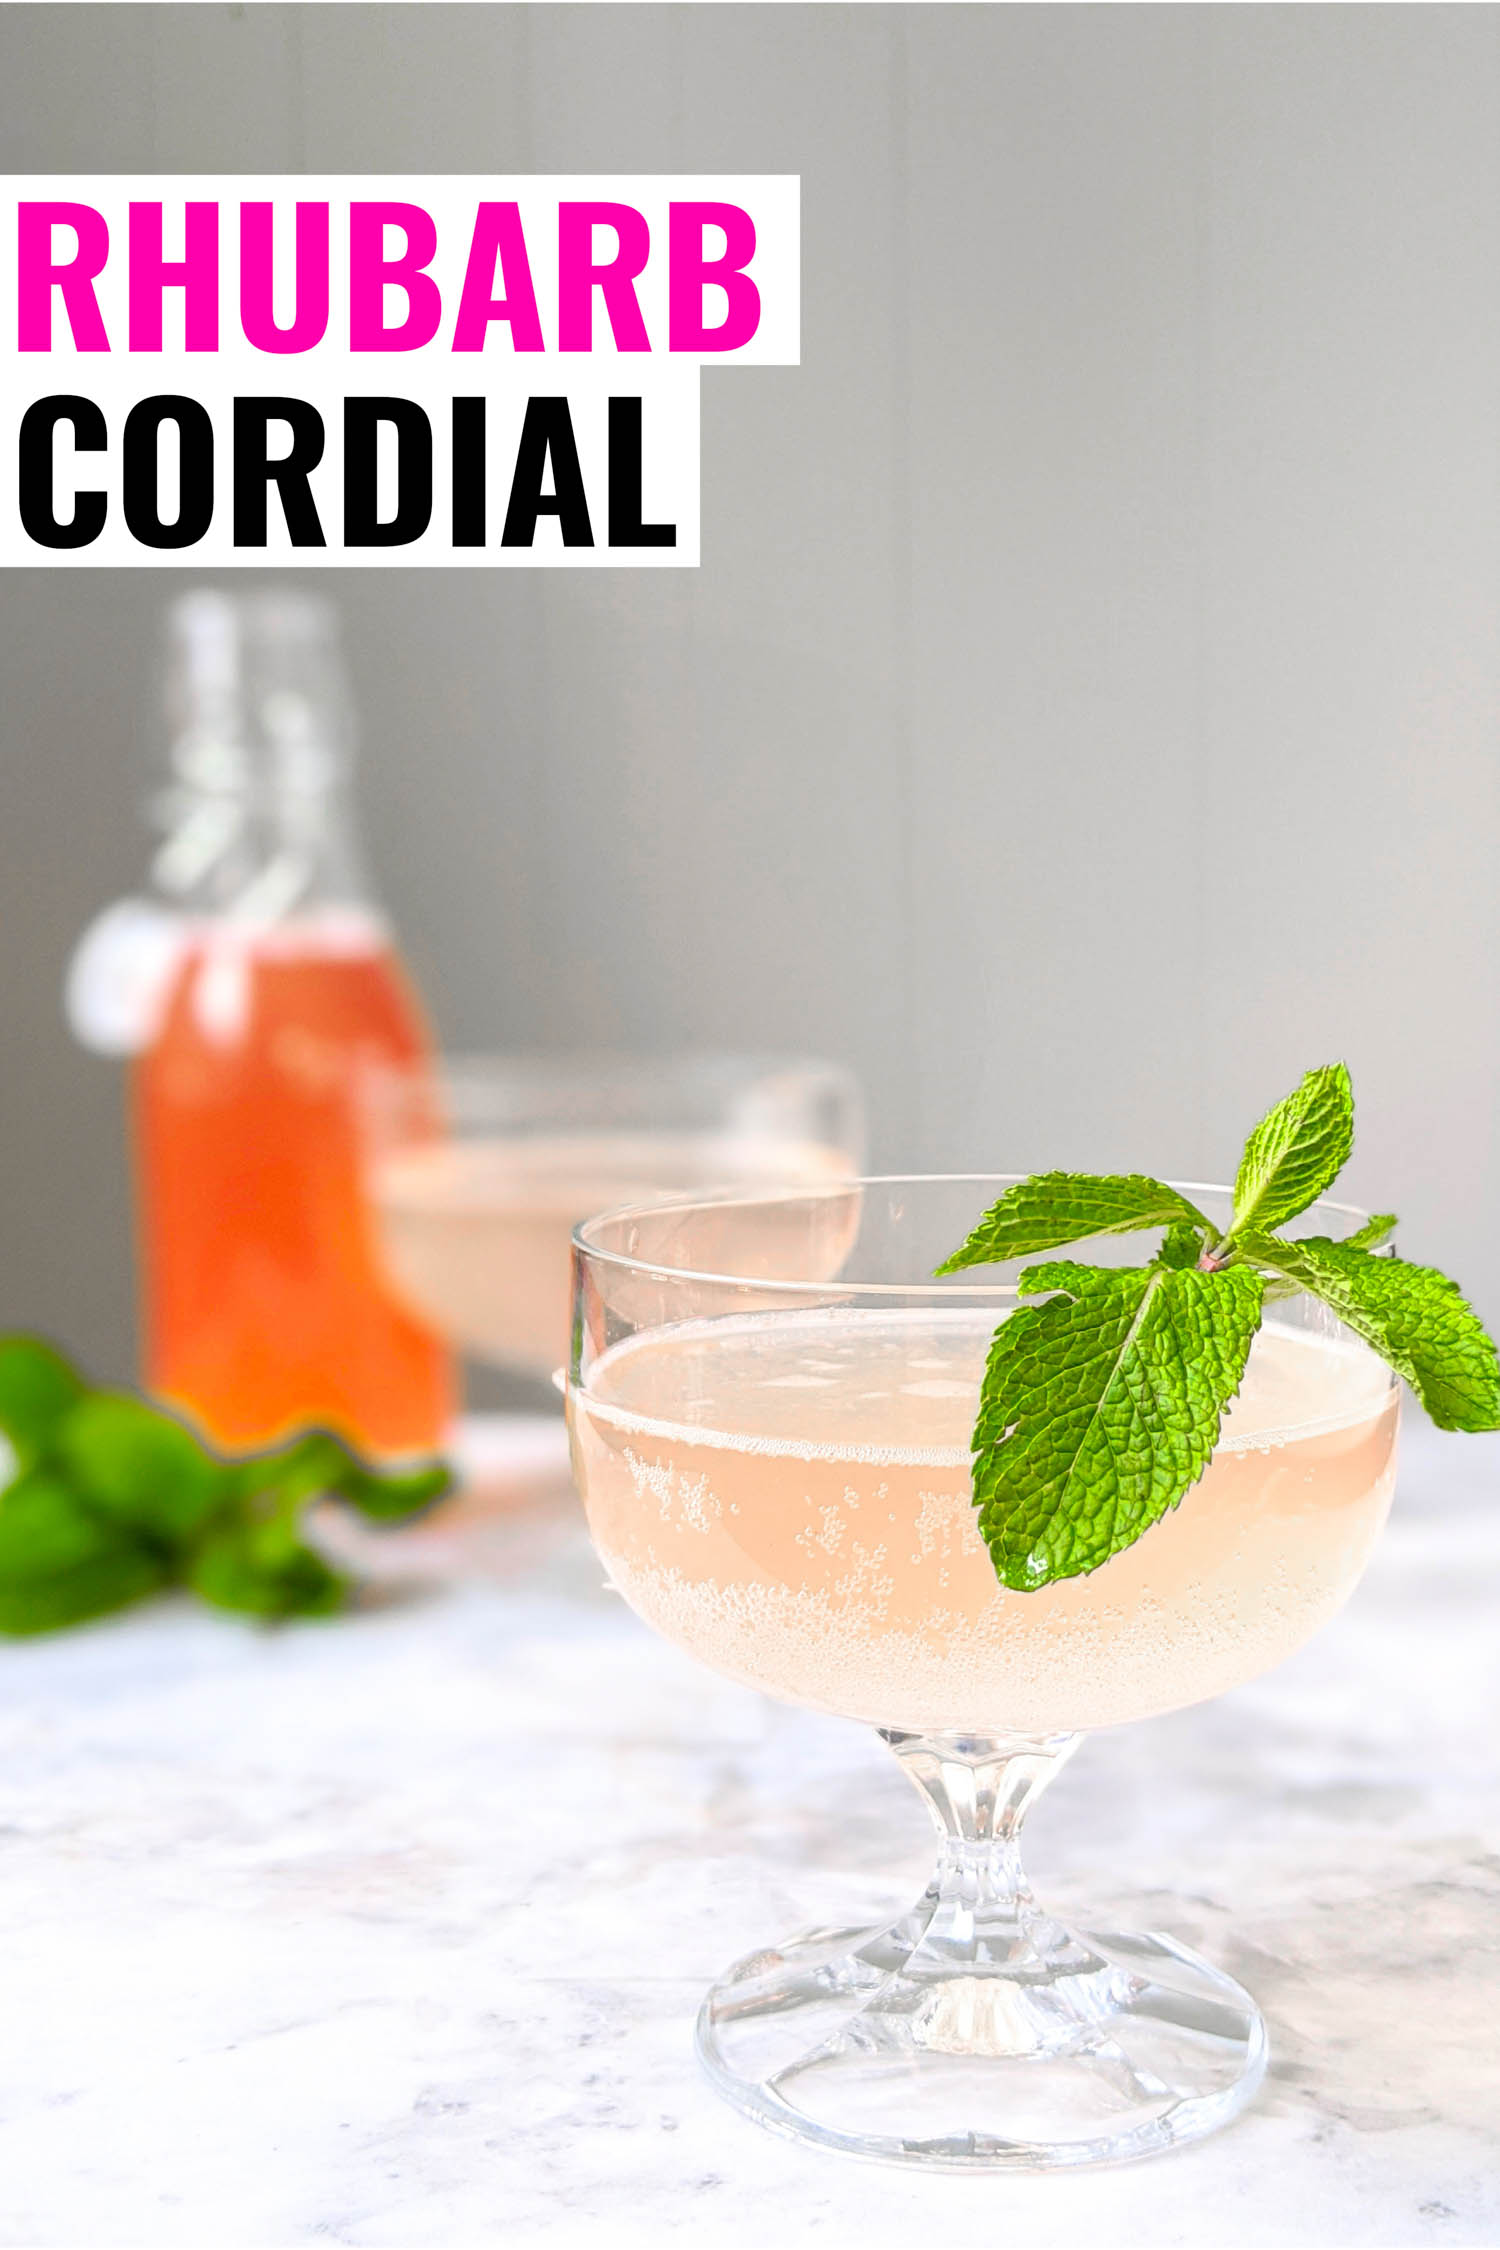 Rhubarb soda called rhabarberschorle in two coupe glasses with syrup bottle in background.